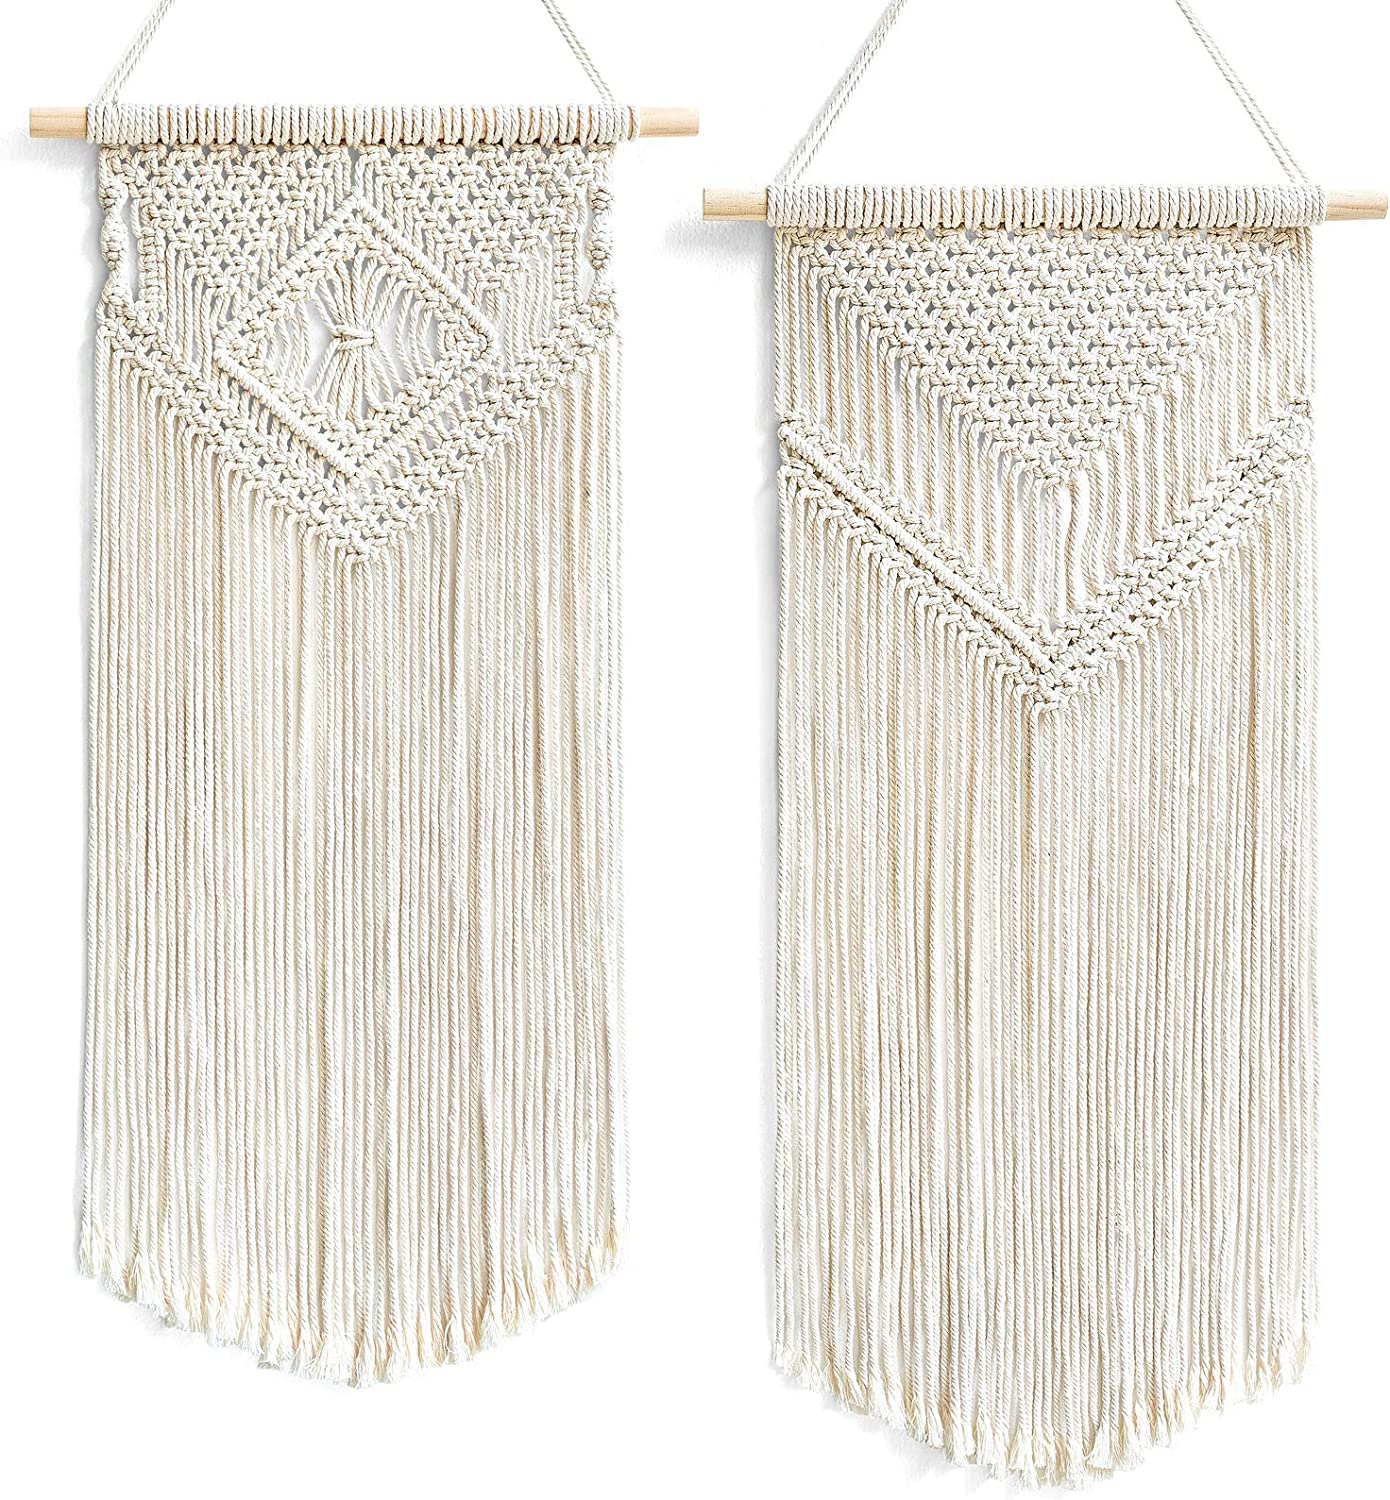 """Dahey 2 Pcs Macrame Wall Hanging Small Woven Tapestry Wall Art Decor - Beautiful for Boho Home Decor, Apartment, Nursery, Party Decorations, 26"""" L×13"""" W"""